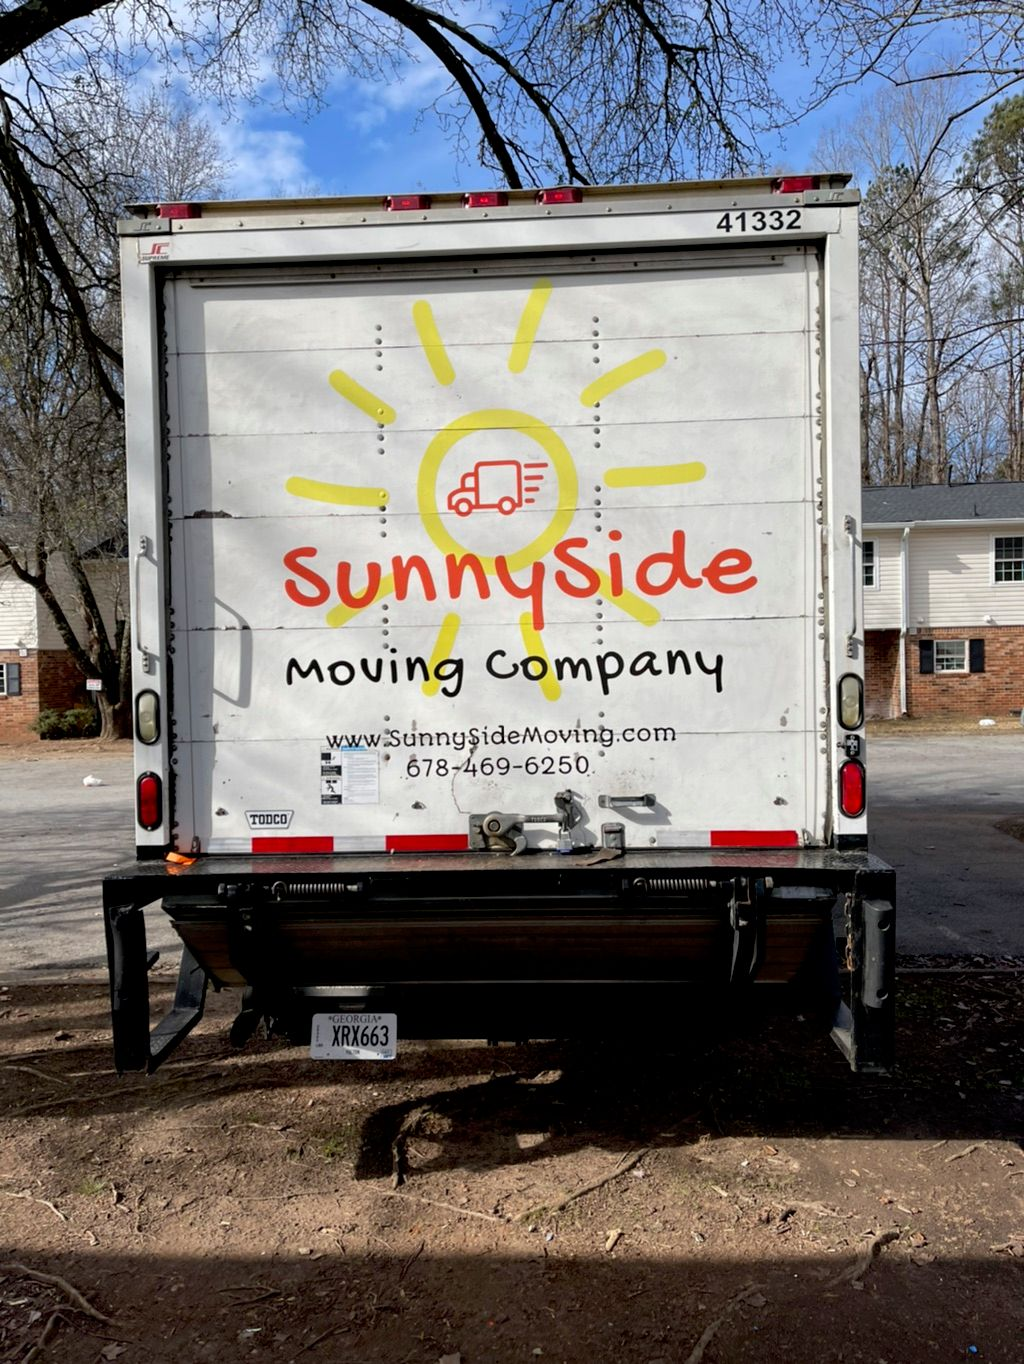 SunnySide Moving Co